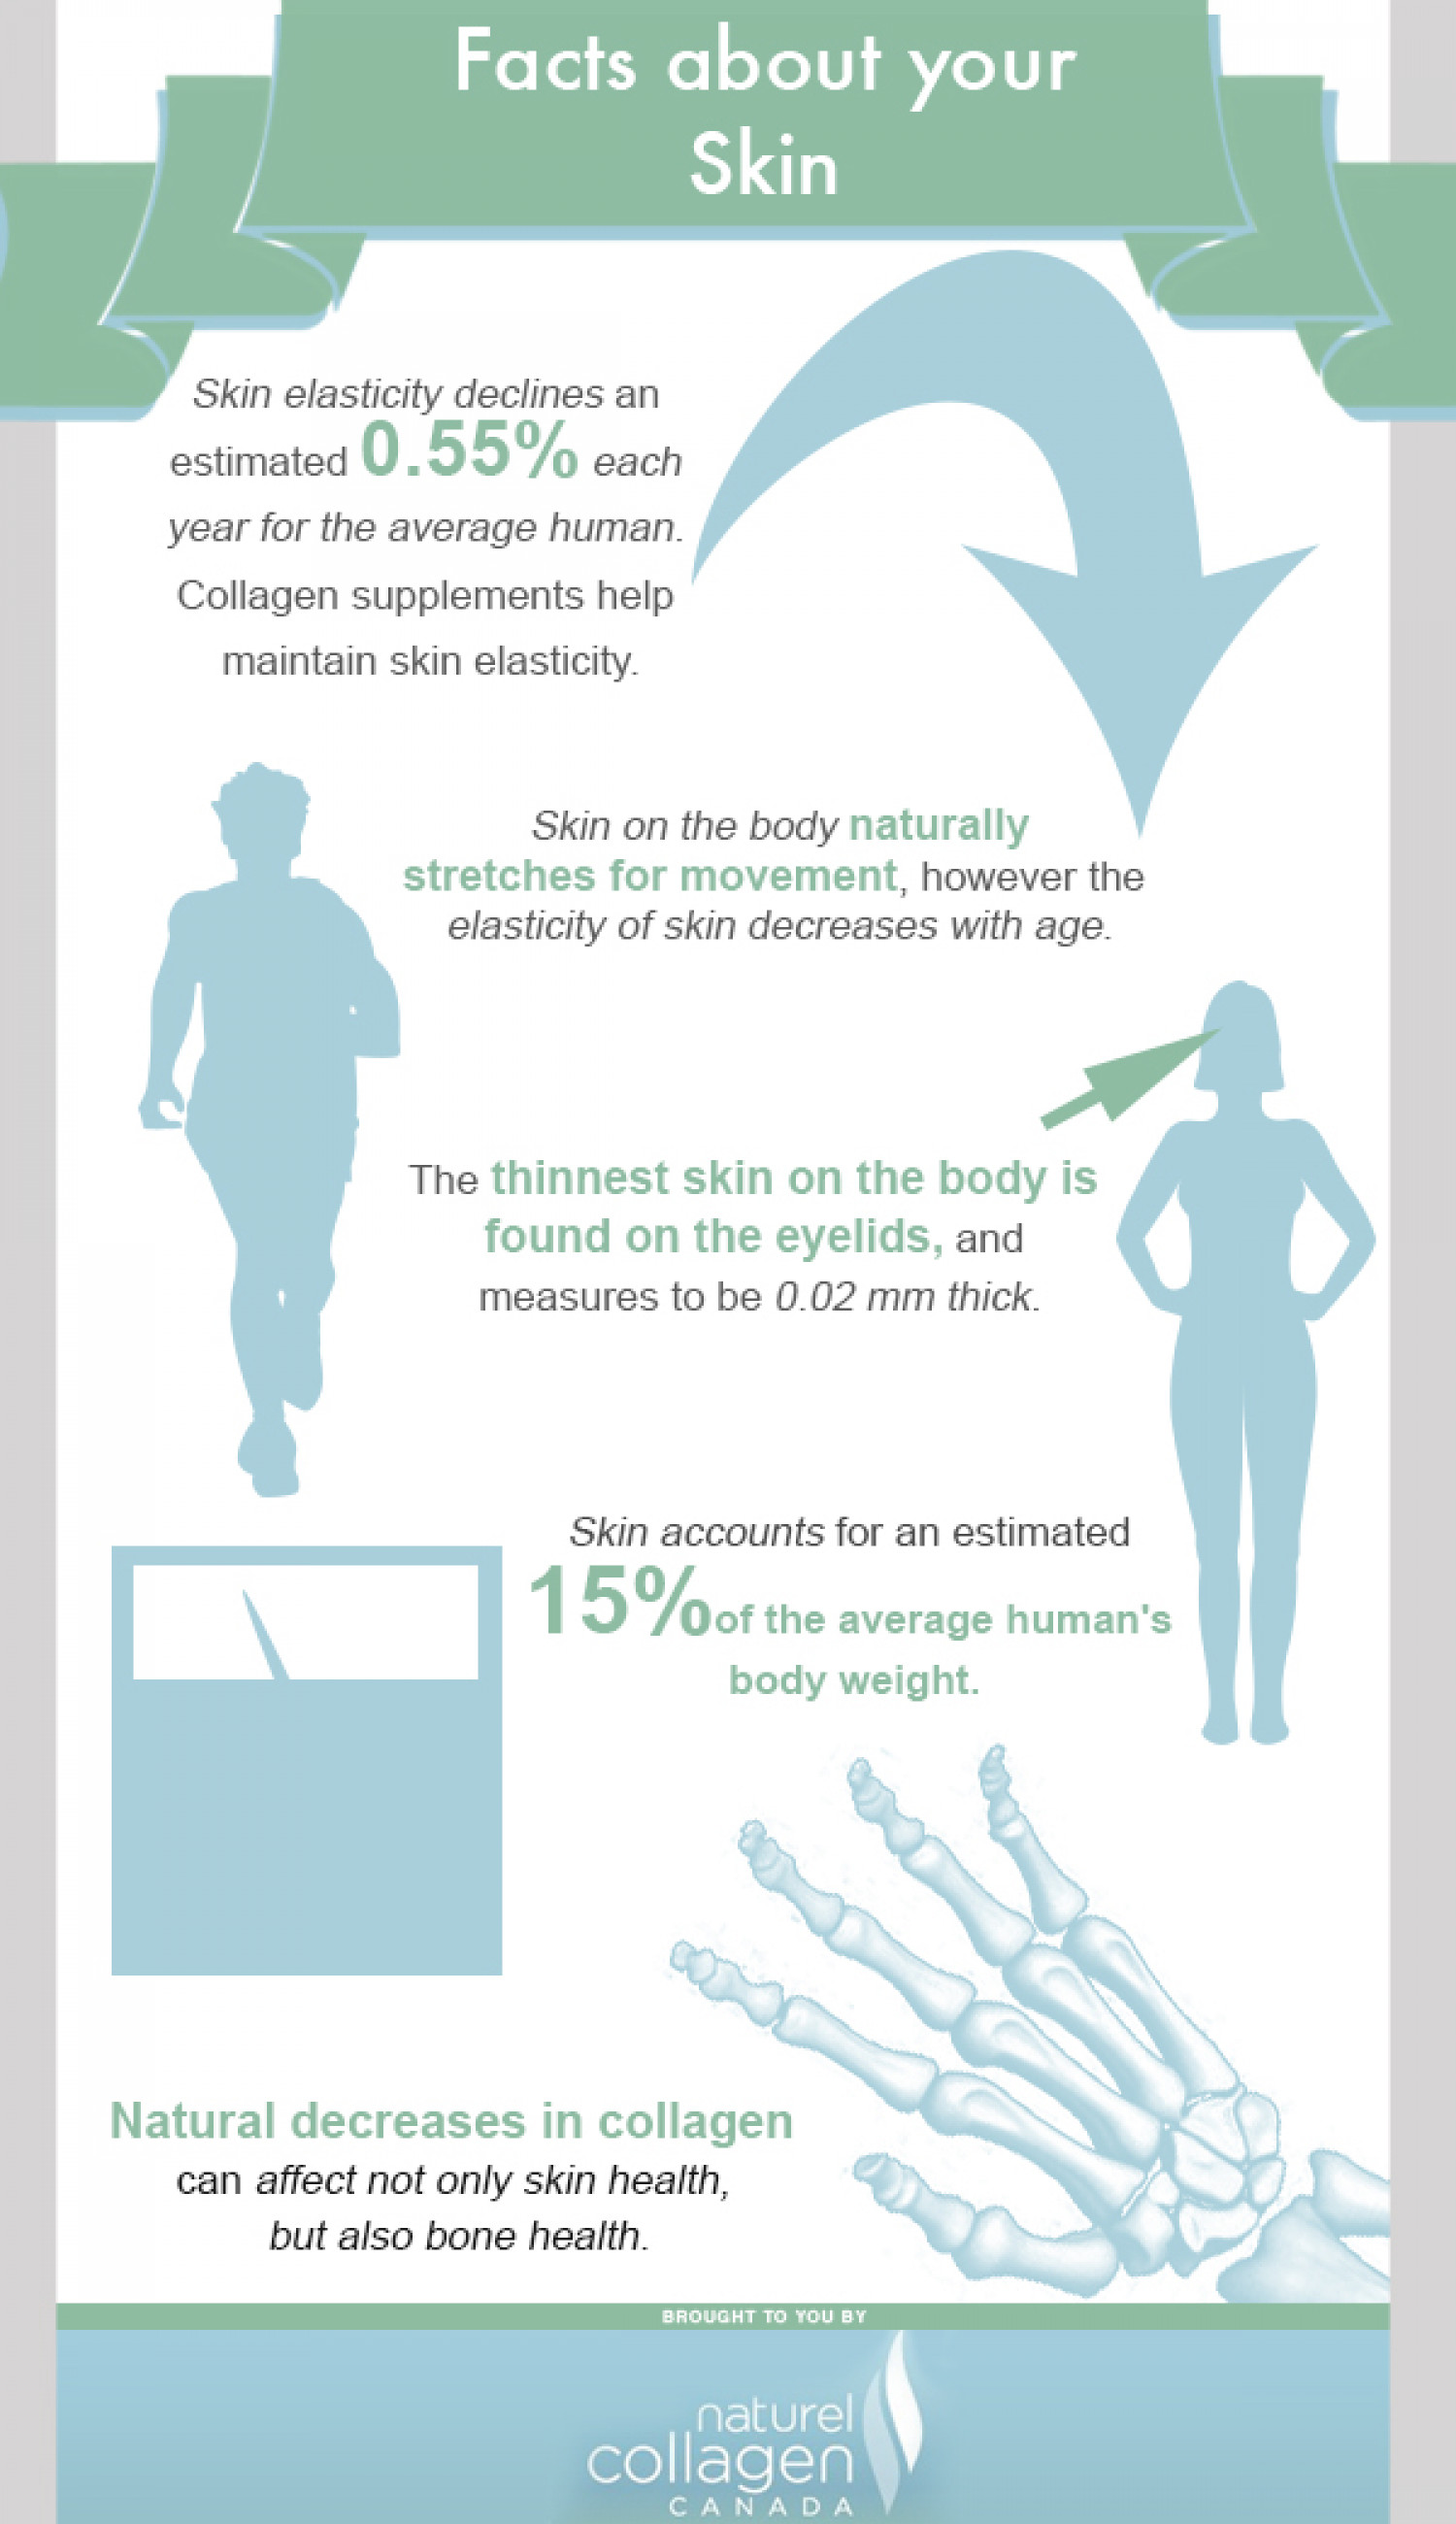 Facts about Your Skin Infographic